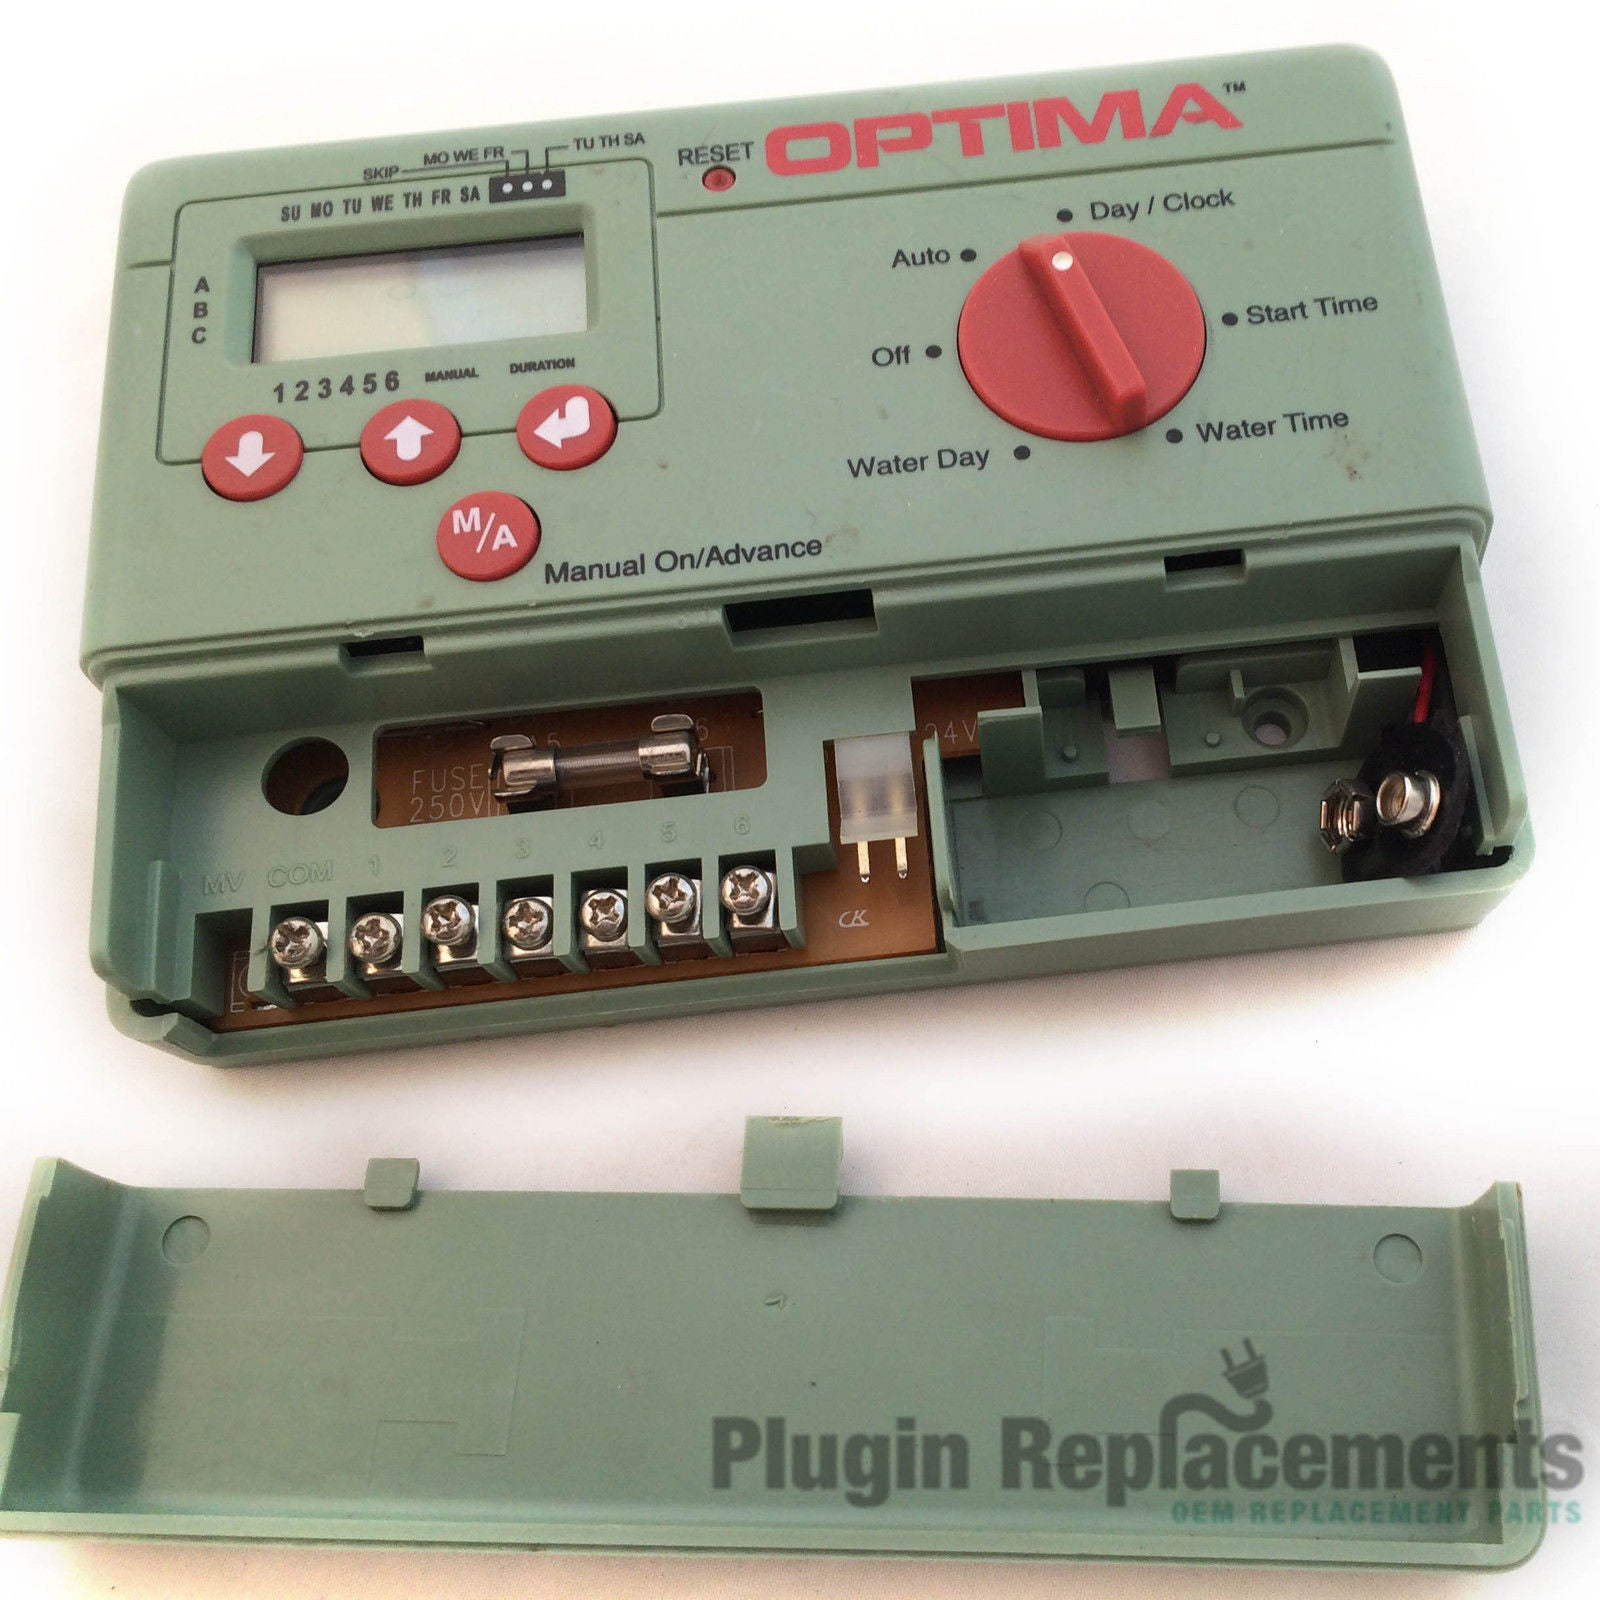 optima automatic sprinkler timer 6 station pc 306 plugin replacements rh pluginreplacements com Orbit Sprinkler Timer Manual 57894 Orbit 57161 Sprinkler Timer Manuals